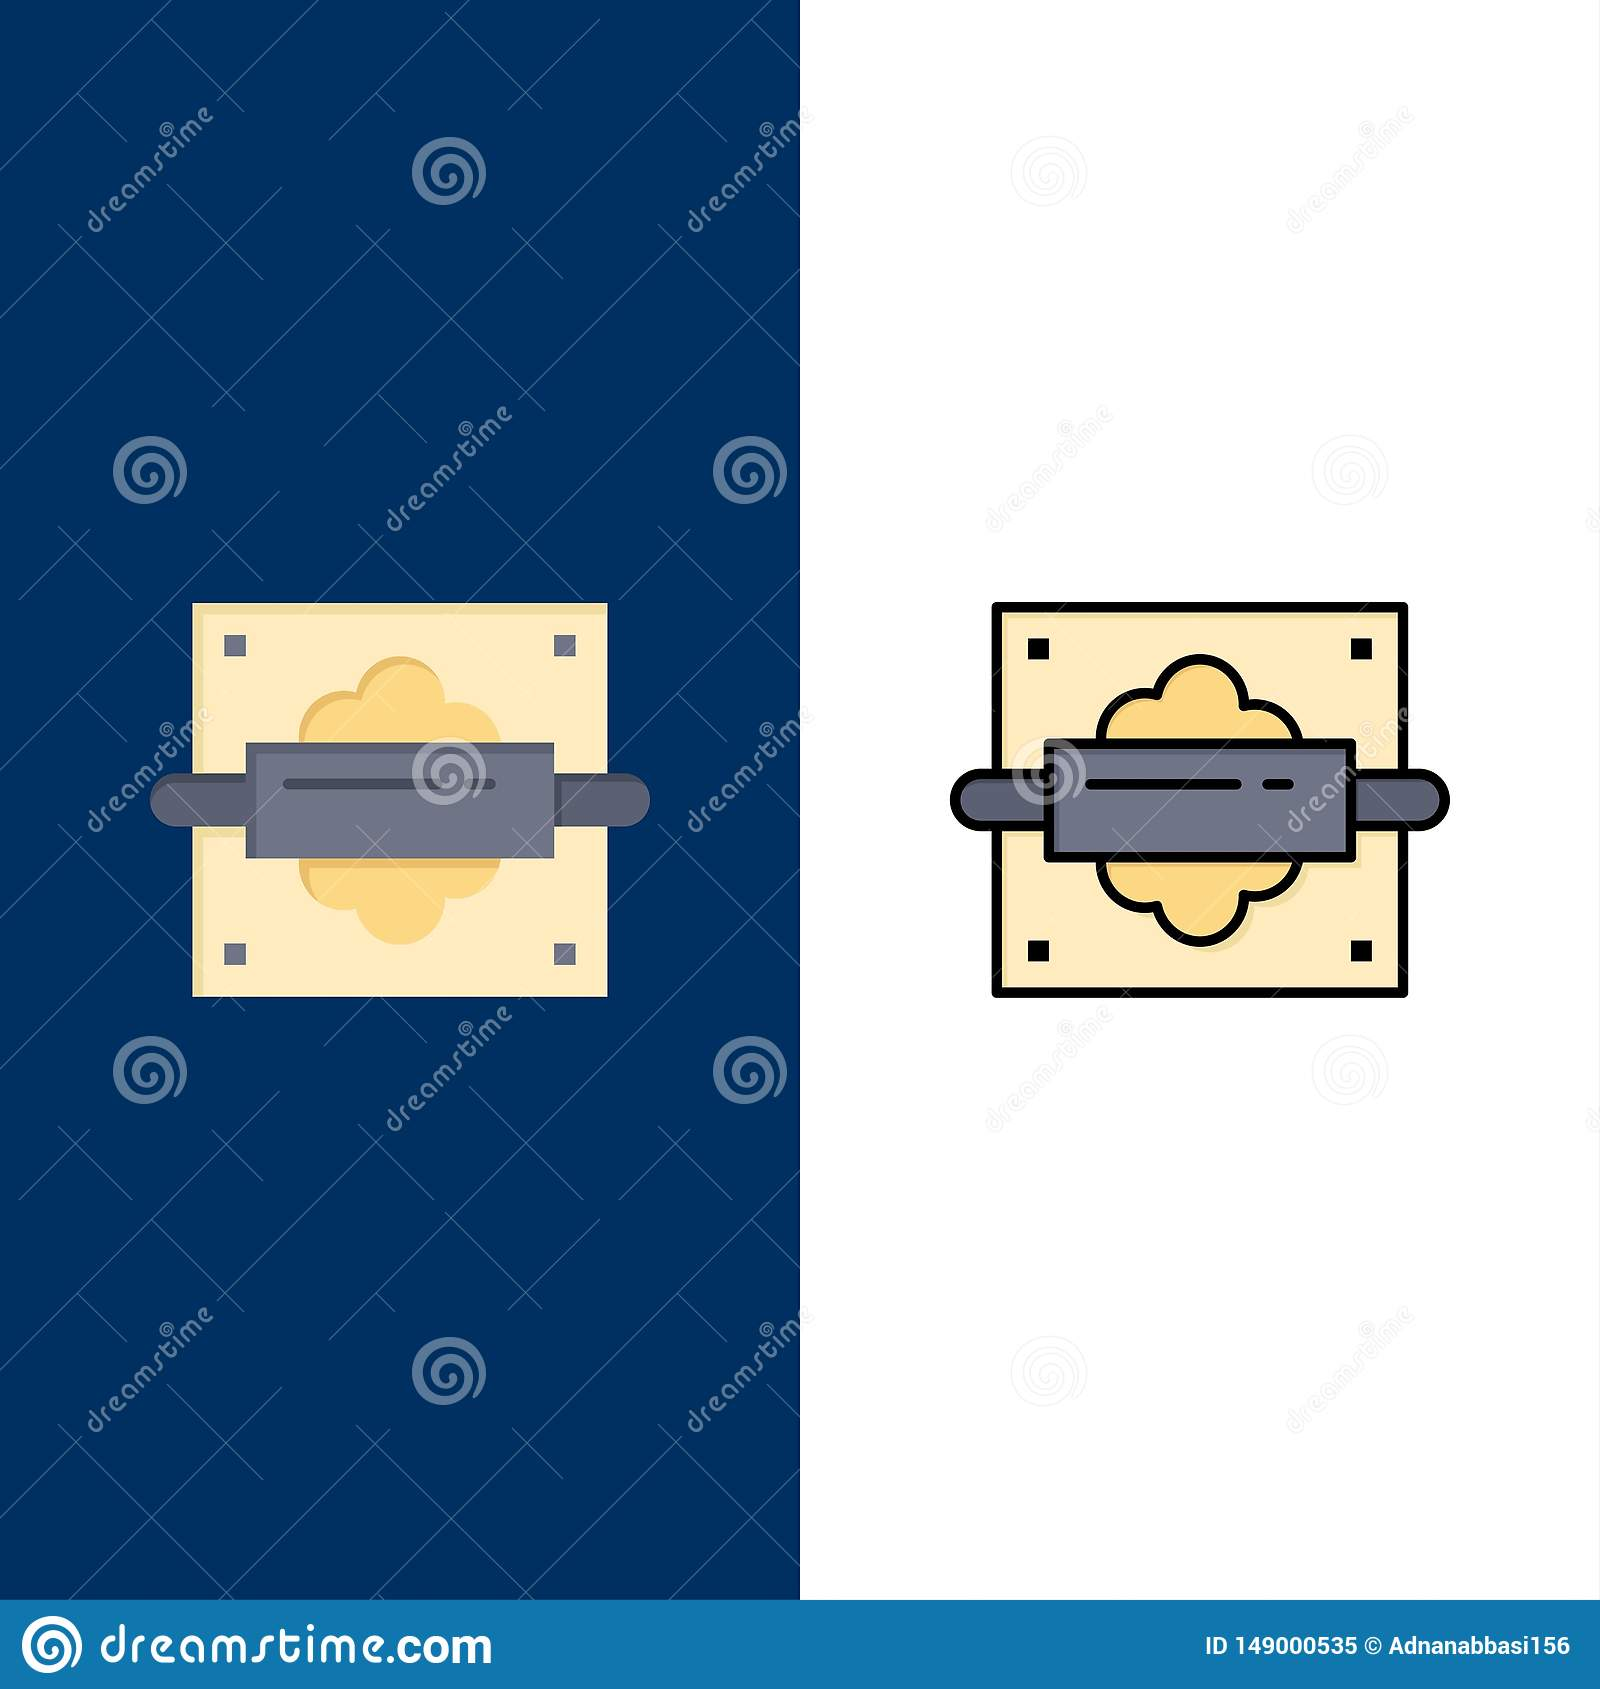 Rolling, Pin, Bread, Kitchen Icons. Flat and Line Filled Icon Set Vector Blue Background